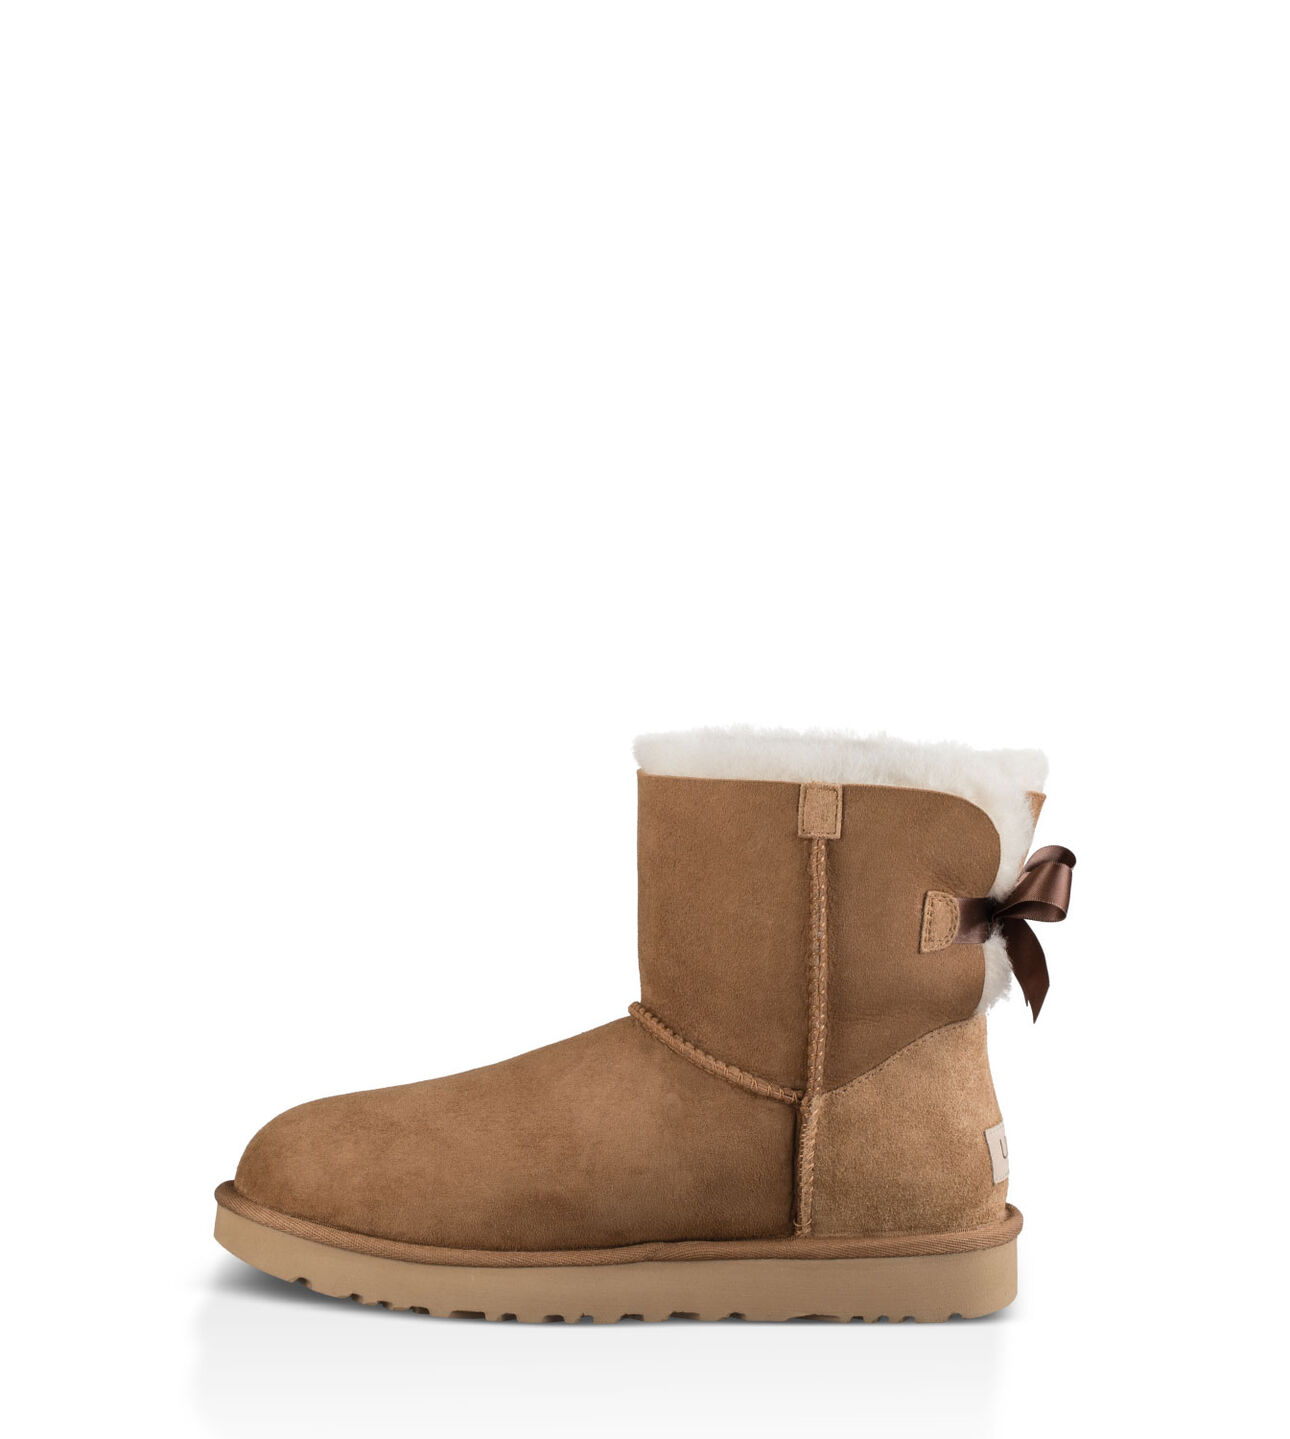 ee15638b3dc Amazon Bailey Bow Ugg Boots - cheap watches mgc-gas.com